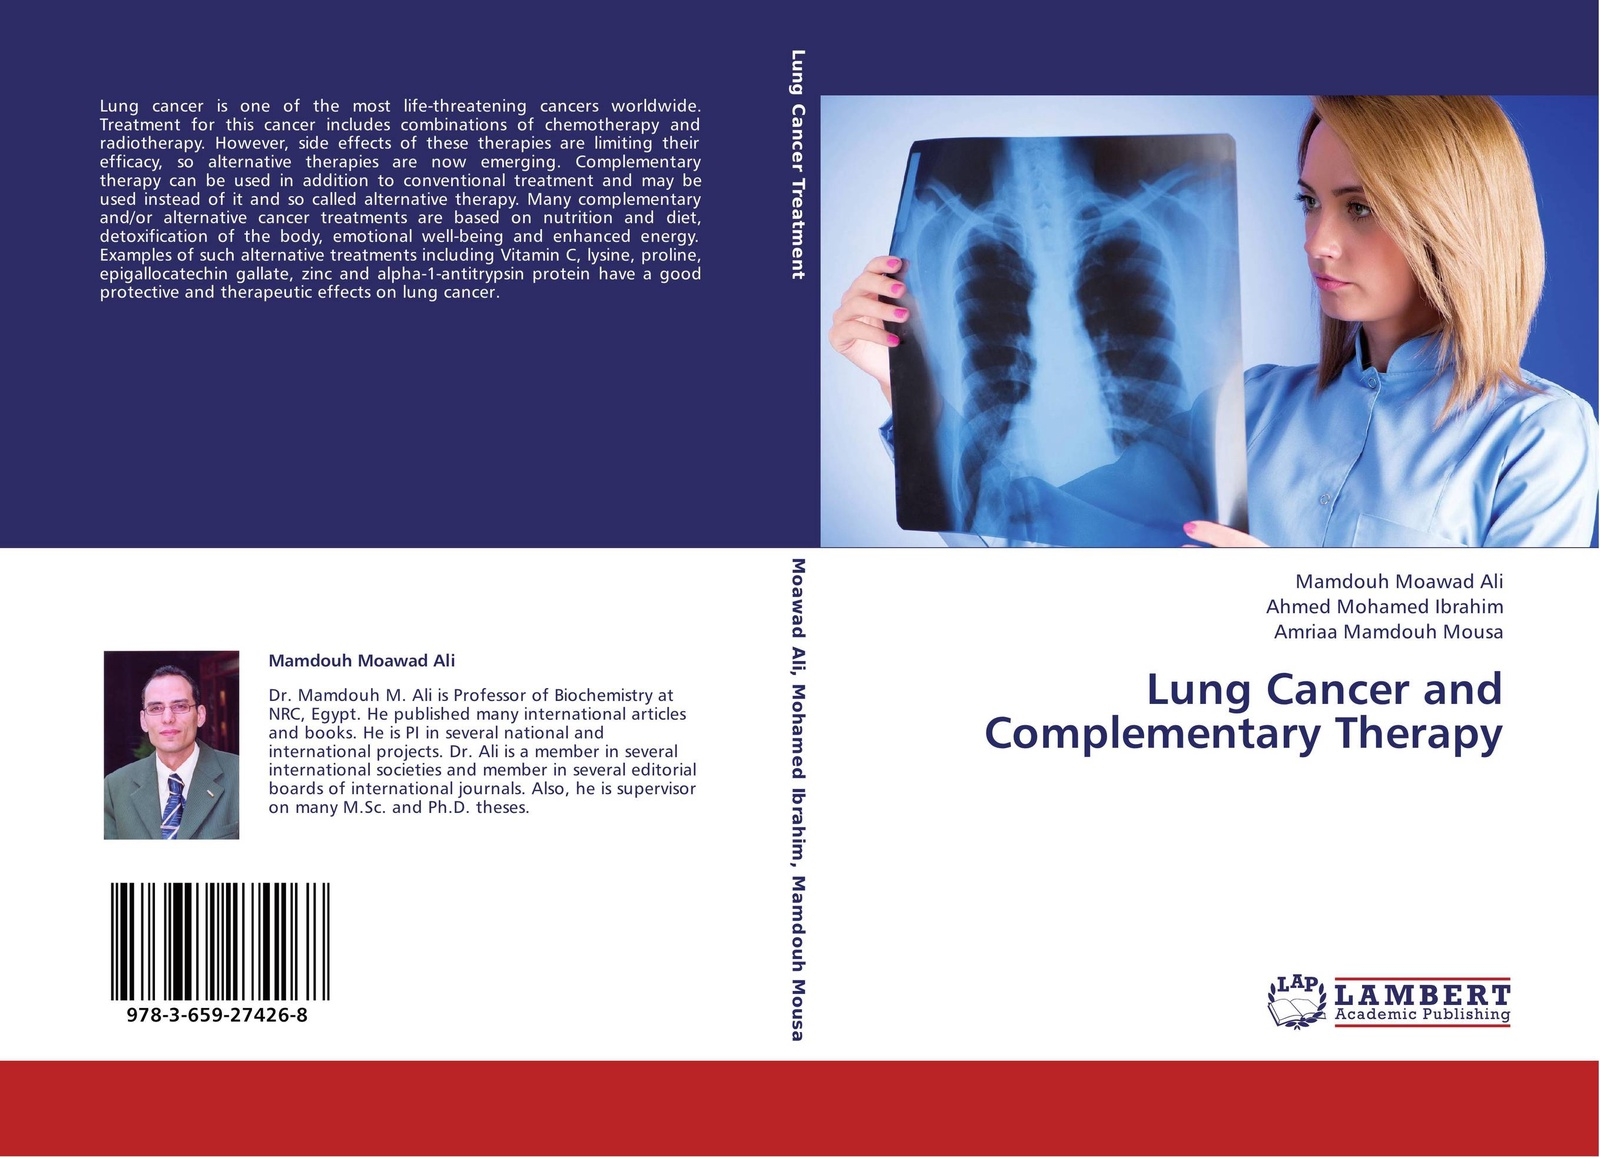 Mamdouh Moawad Ali,Ahmed Mohamed Ibrahim and Amriaa Mamdouh Mousa Lung Cancer and Complementary Therapy characterization of microparticles for lung cancer delivery